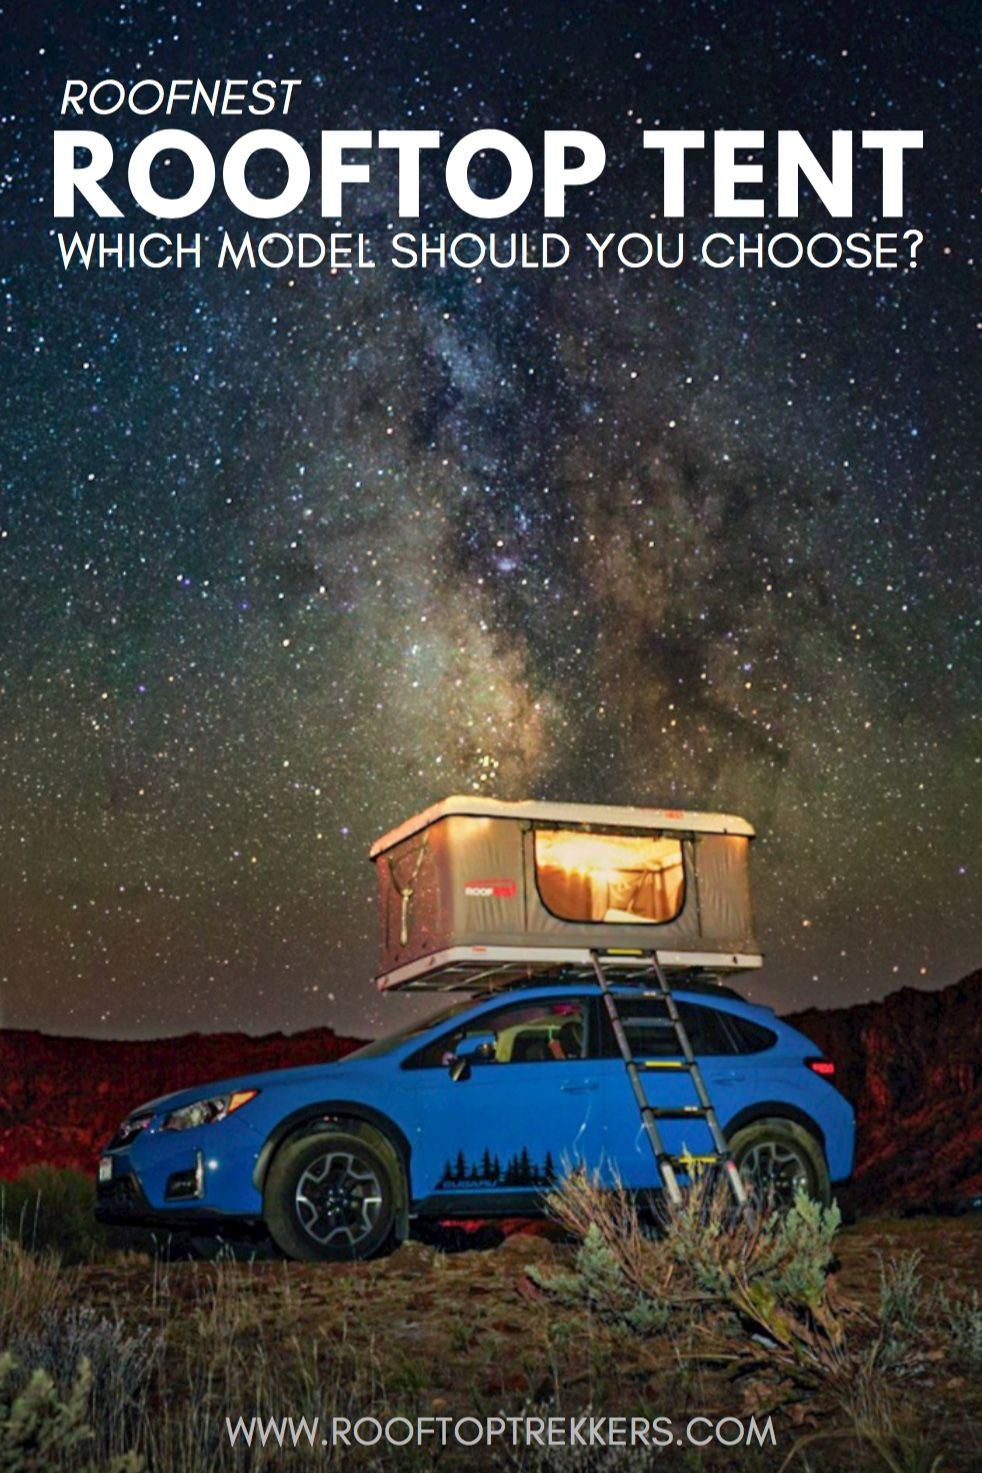 Wondering which model Roofnest Rooftop Tent to purchase